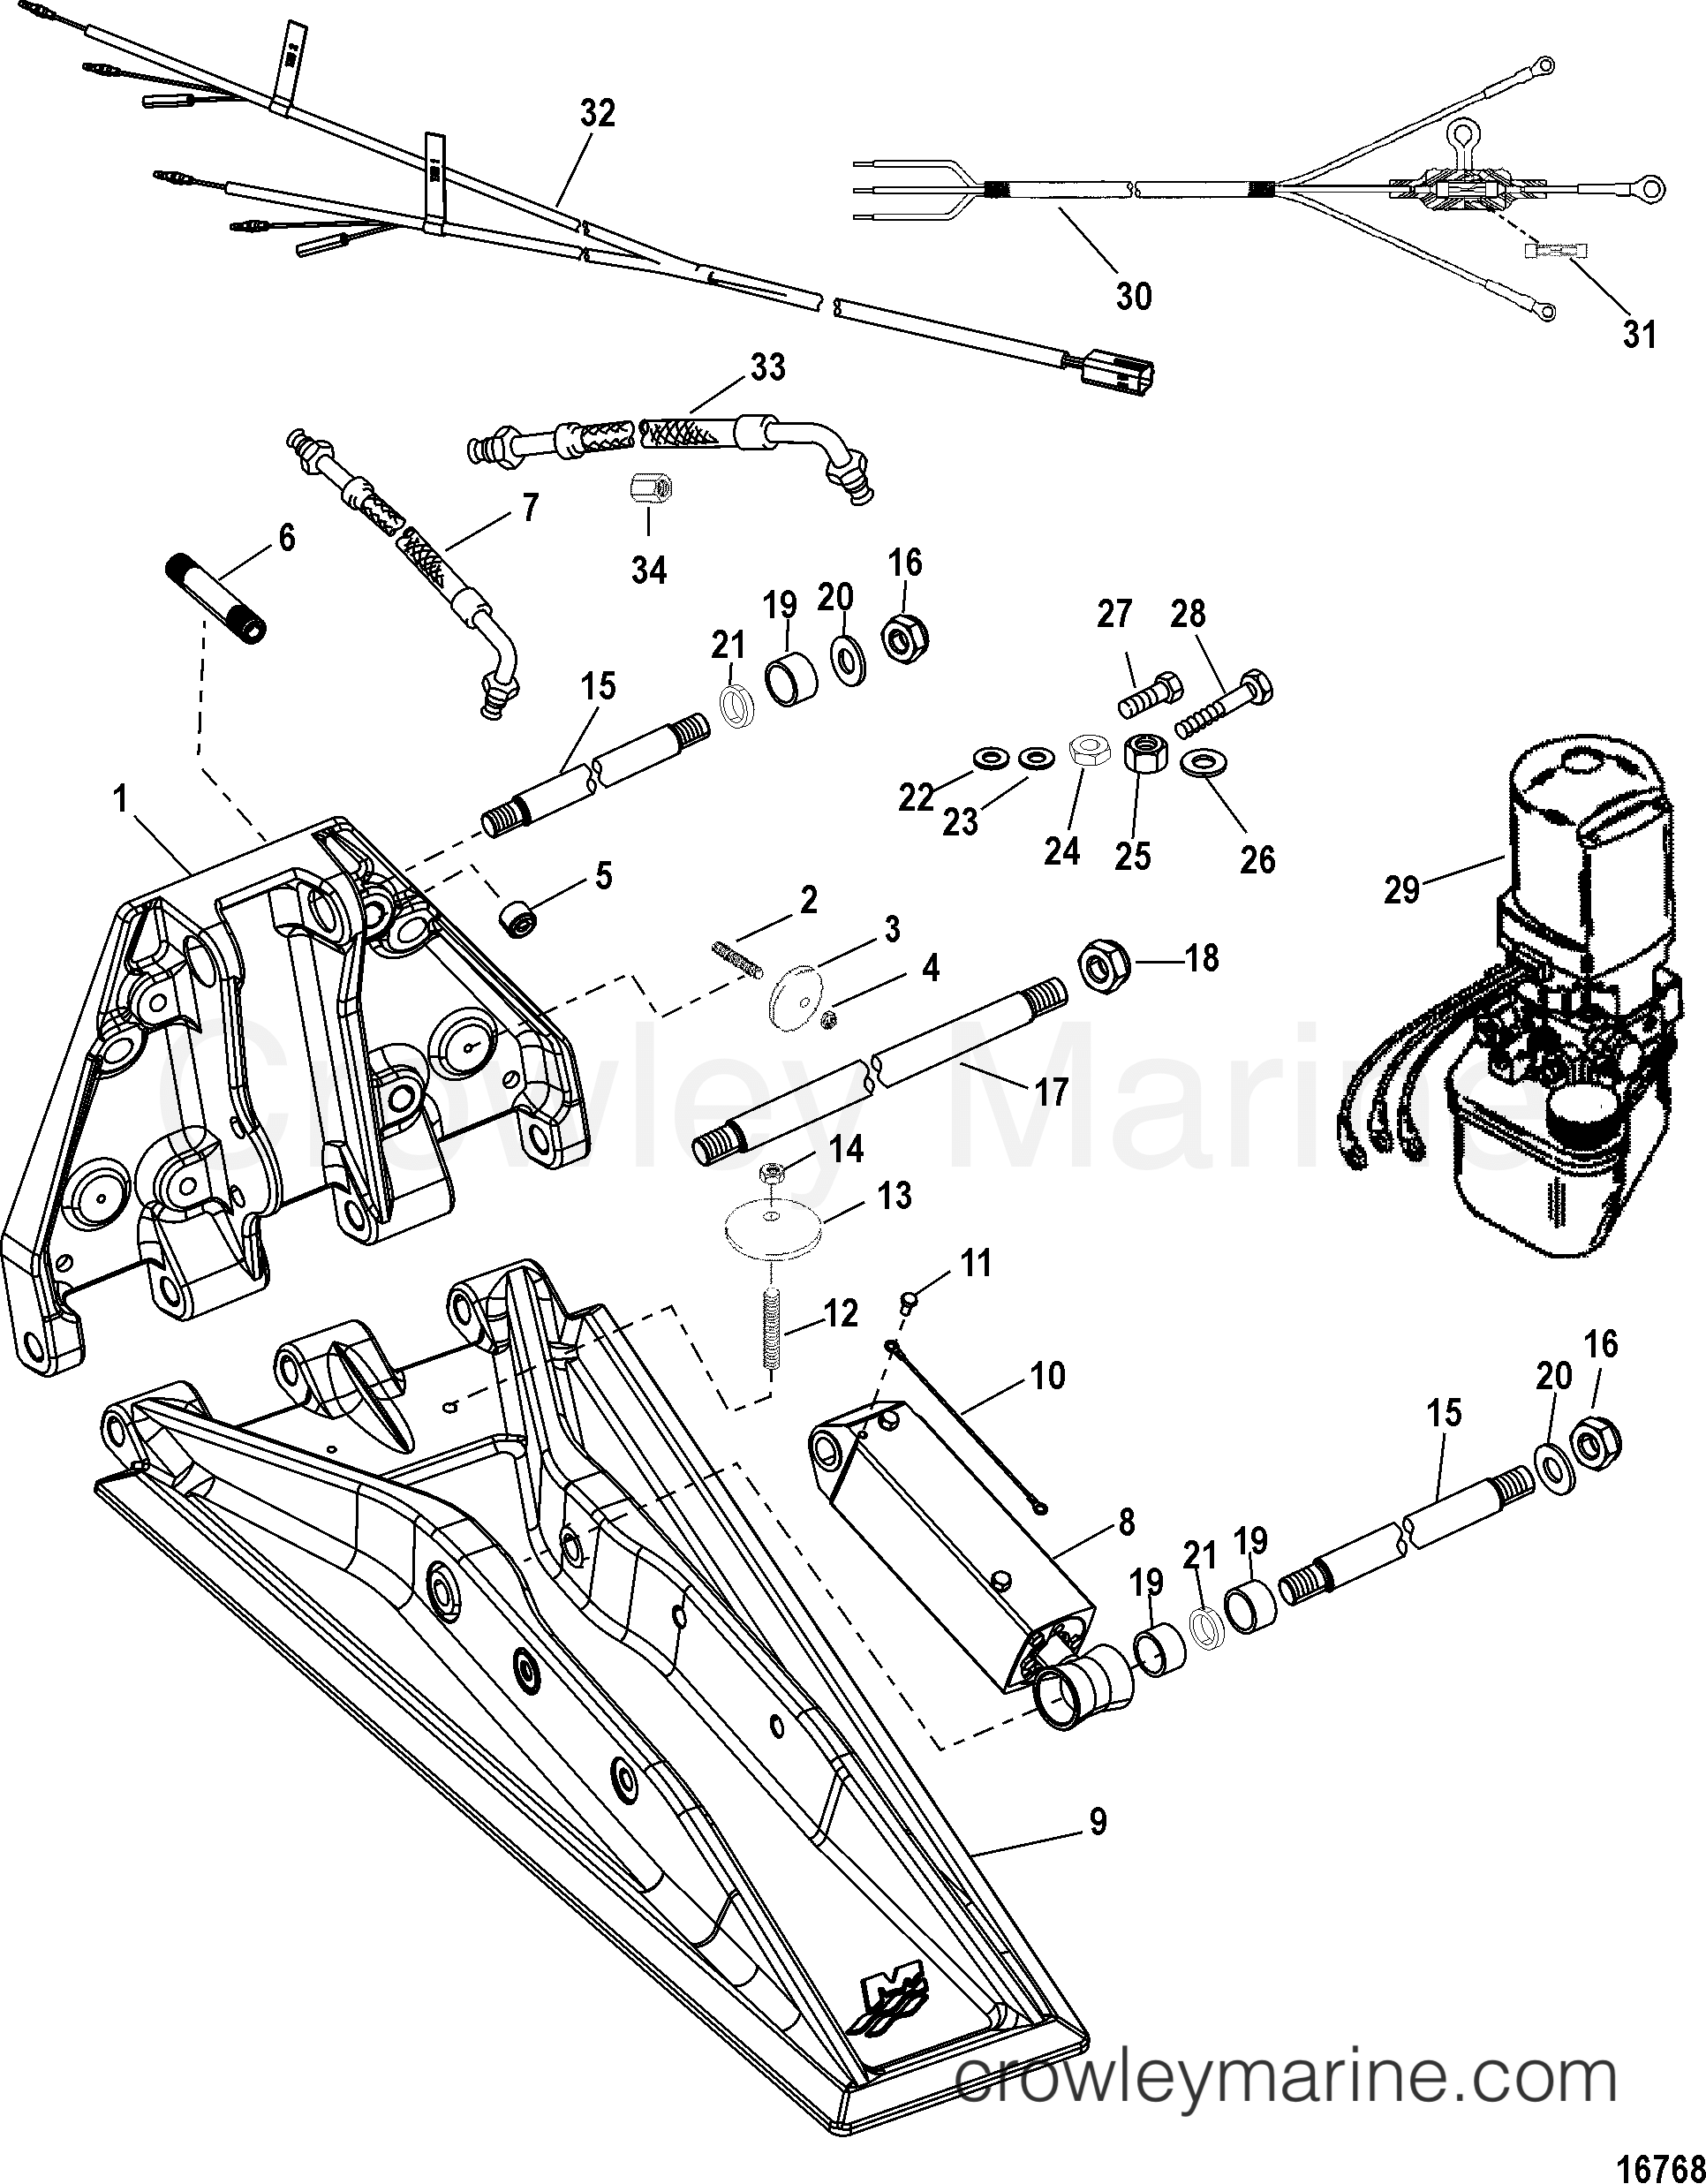 Trim Tab Mercruiser Wiring Diagram | Wiring Schematic Diagram K Plane Trim Tab Wiring Diagram on trim tab switch, trim tab troubleshooting, trim tab steering, trim tab repair, trim tab indicators, trim tab fuse, trim tab parts, bennett trim tab diagram, trim tab motor, trim tab system, trim tab relay, port side of boat diagram, switch diagram, trim tab lights, trim tab sensor, trim tab installation, boat trim tabs operation diagram, trim tab circuit, trim tabs for boats, trim tab adjustment,